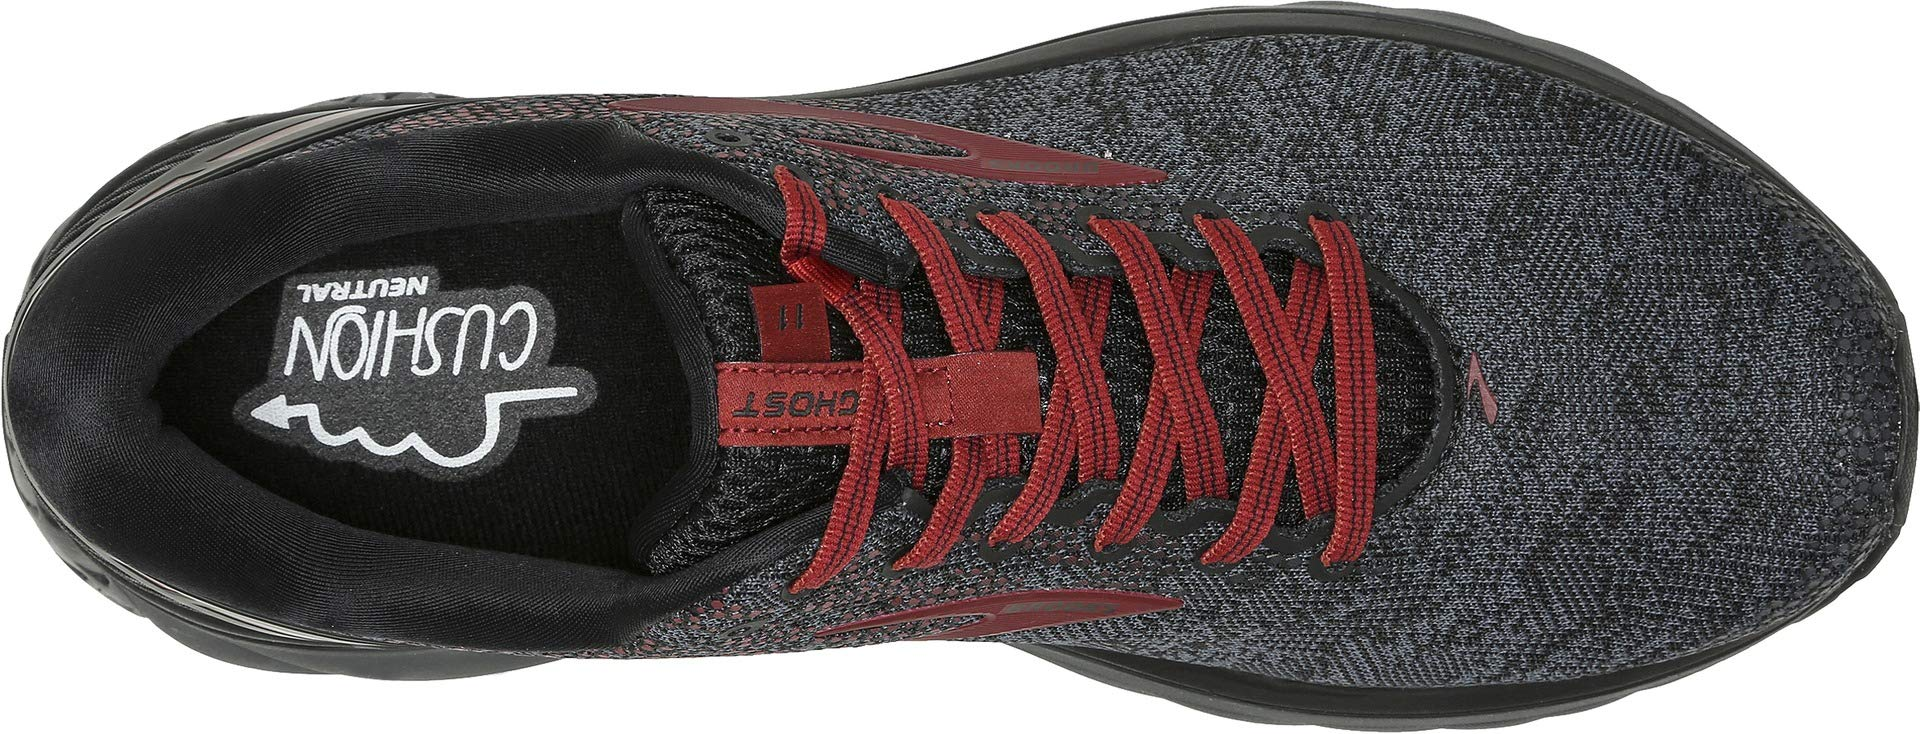 Brooks Men's Ghost 11 Black/White/Merlot 15 D US by Brooks (Image #1)